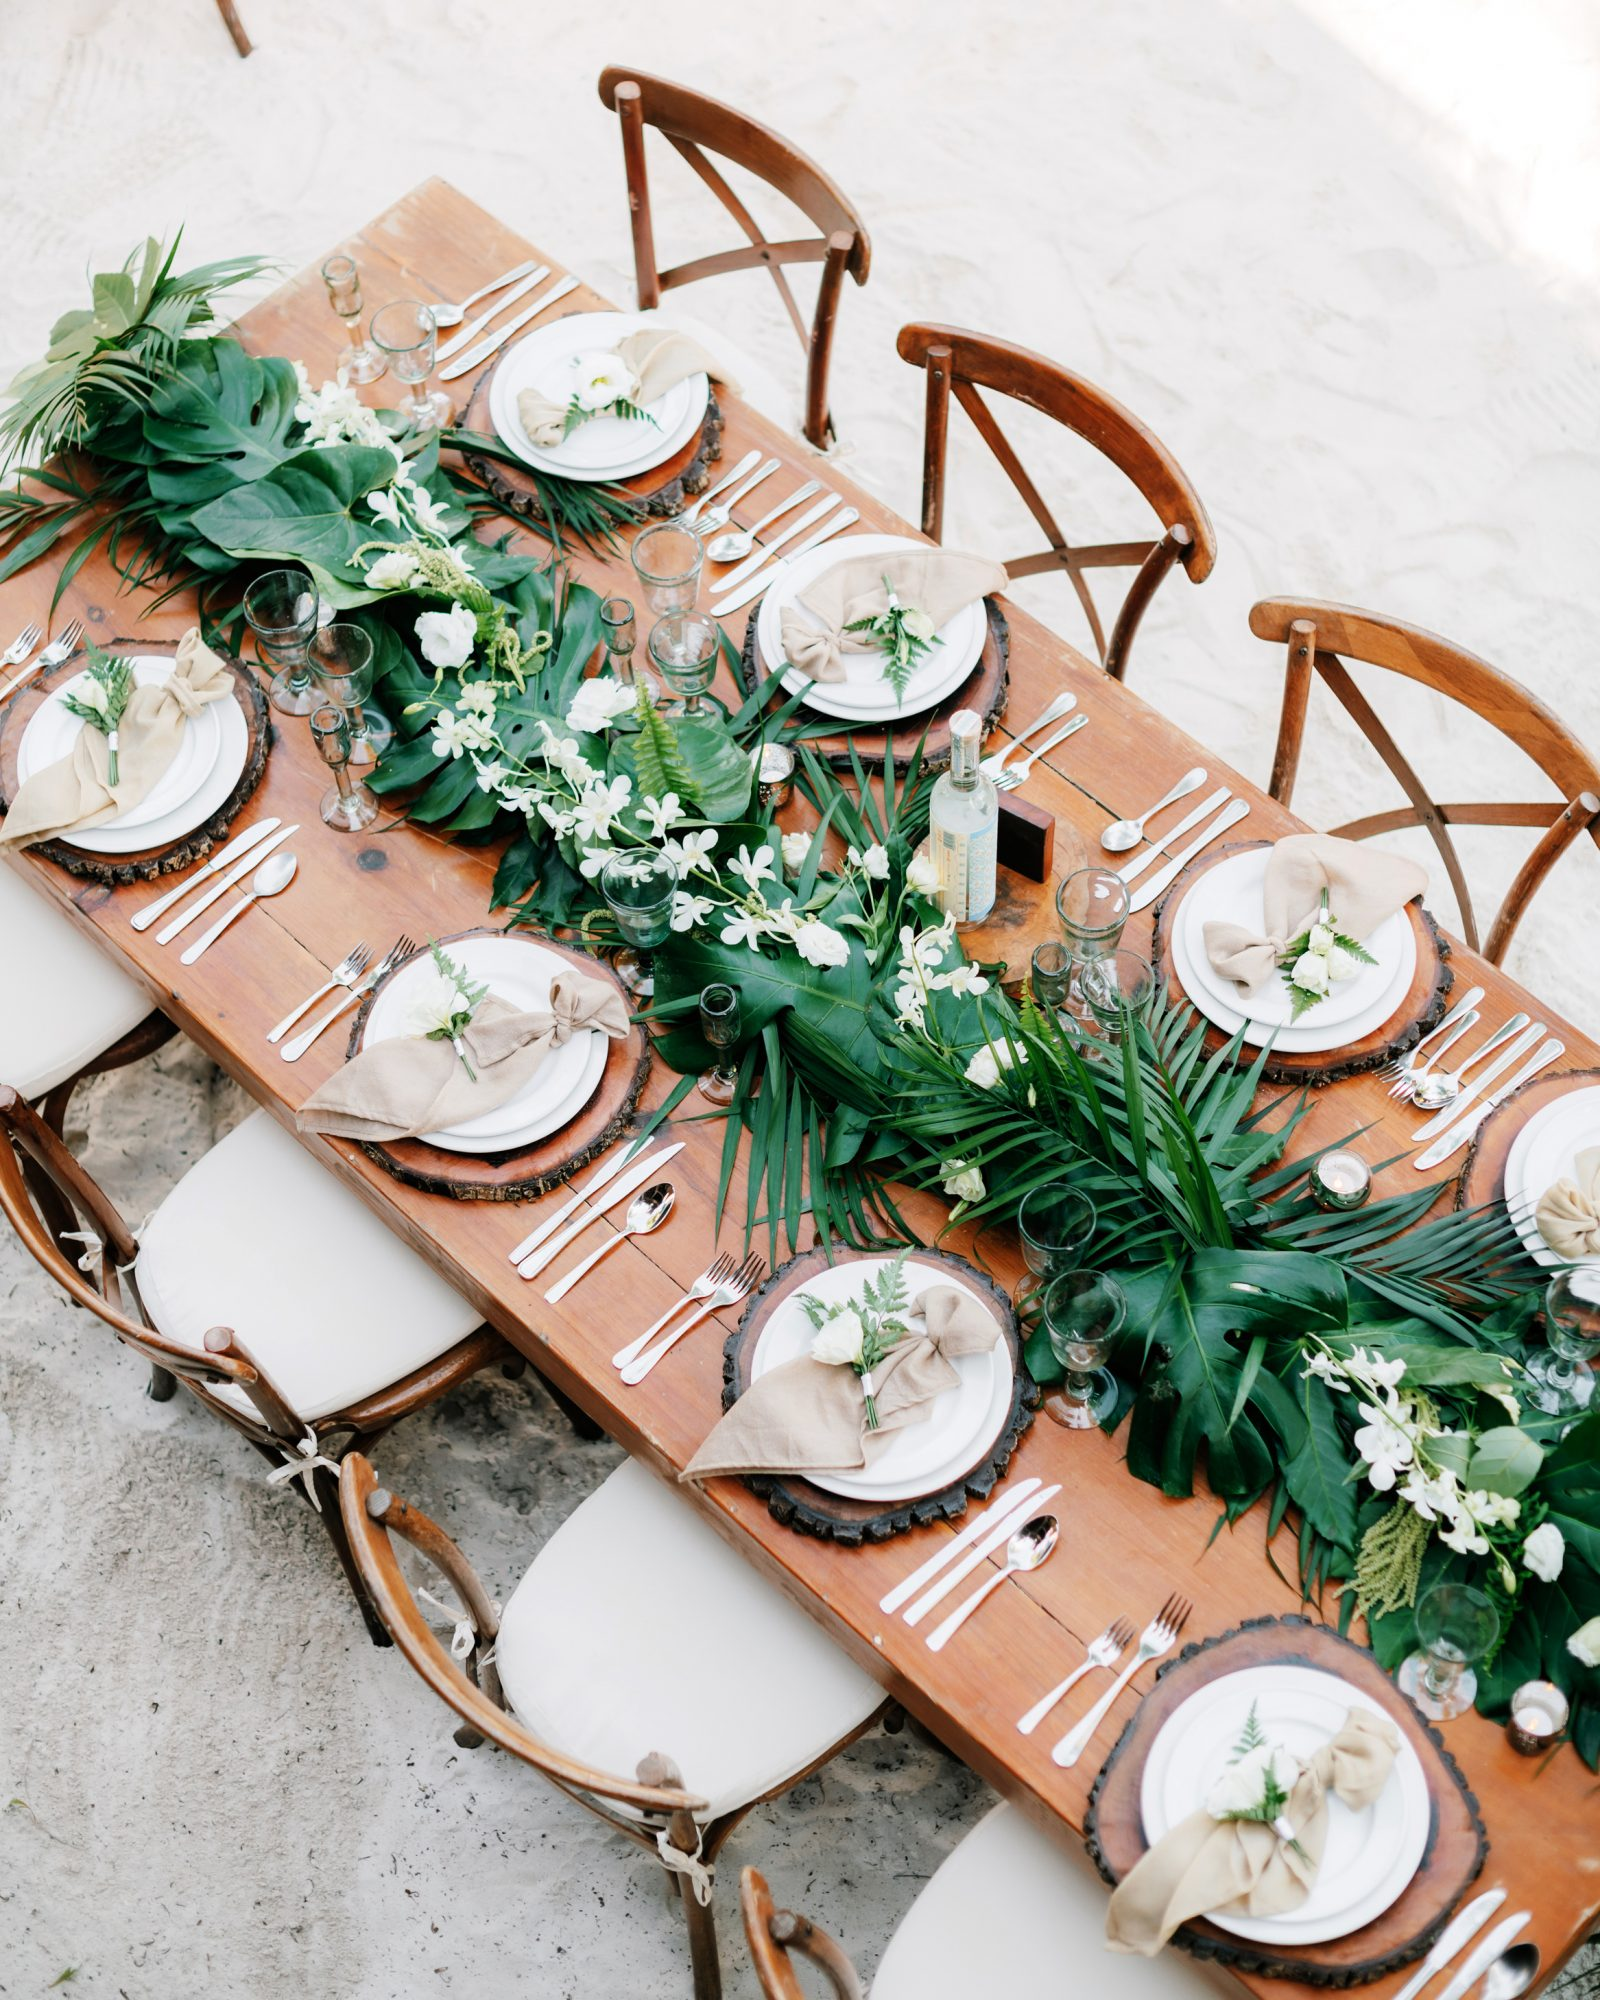 Tropical Wedding Ideas That Will Transform Your Big Day Into An Oasis Martha Stewart All tropical leaves artwork ships choose your favorite tropical leaves designs and purchase them as wall art, home decor, phone. tropical wedding ideas that will